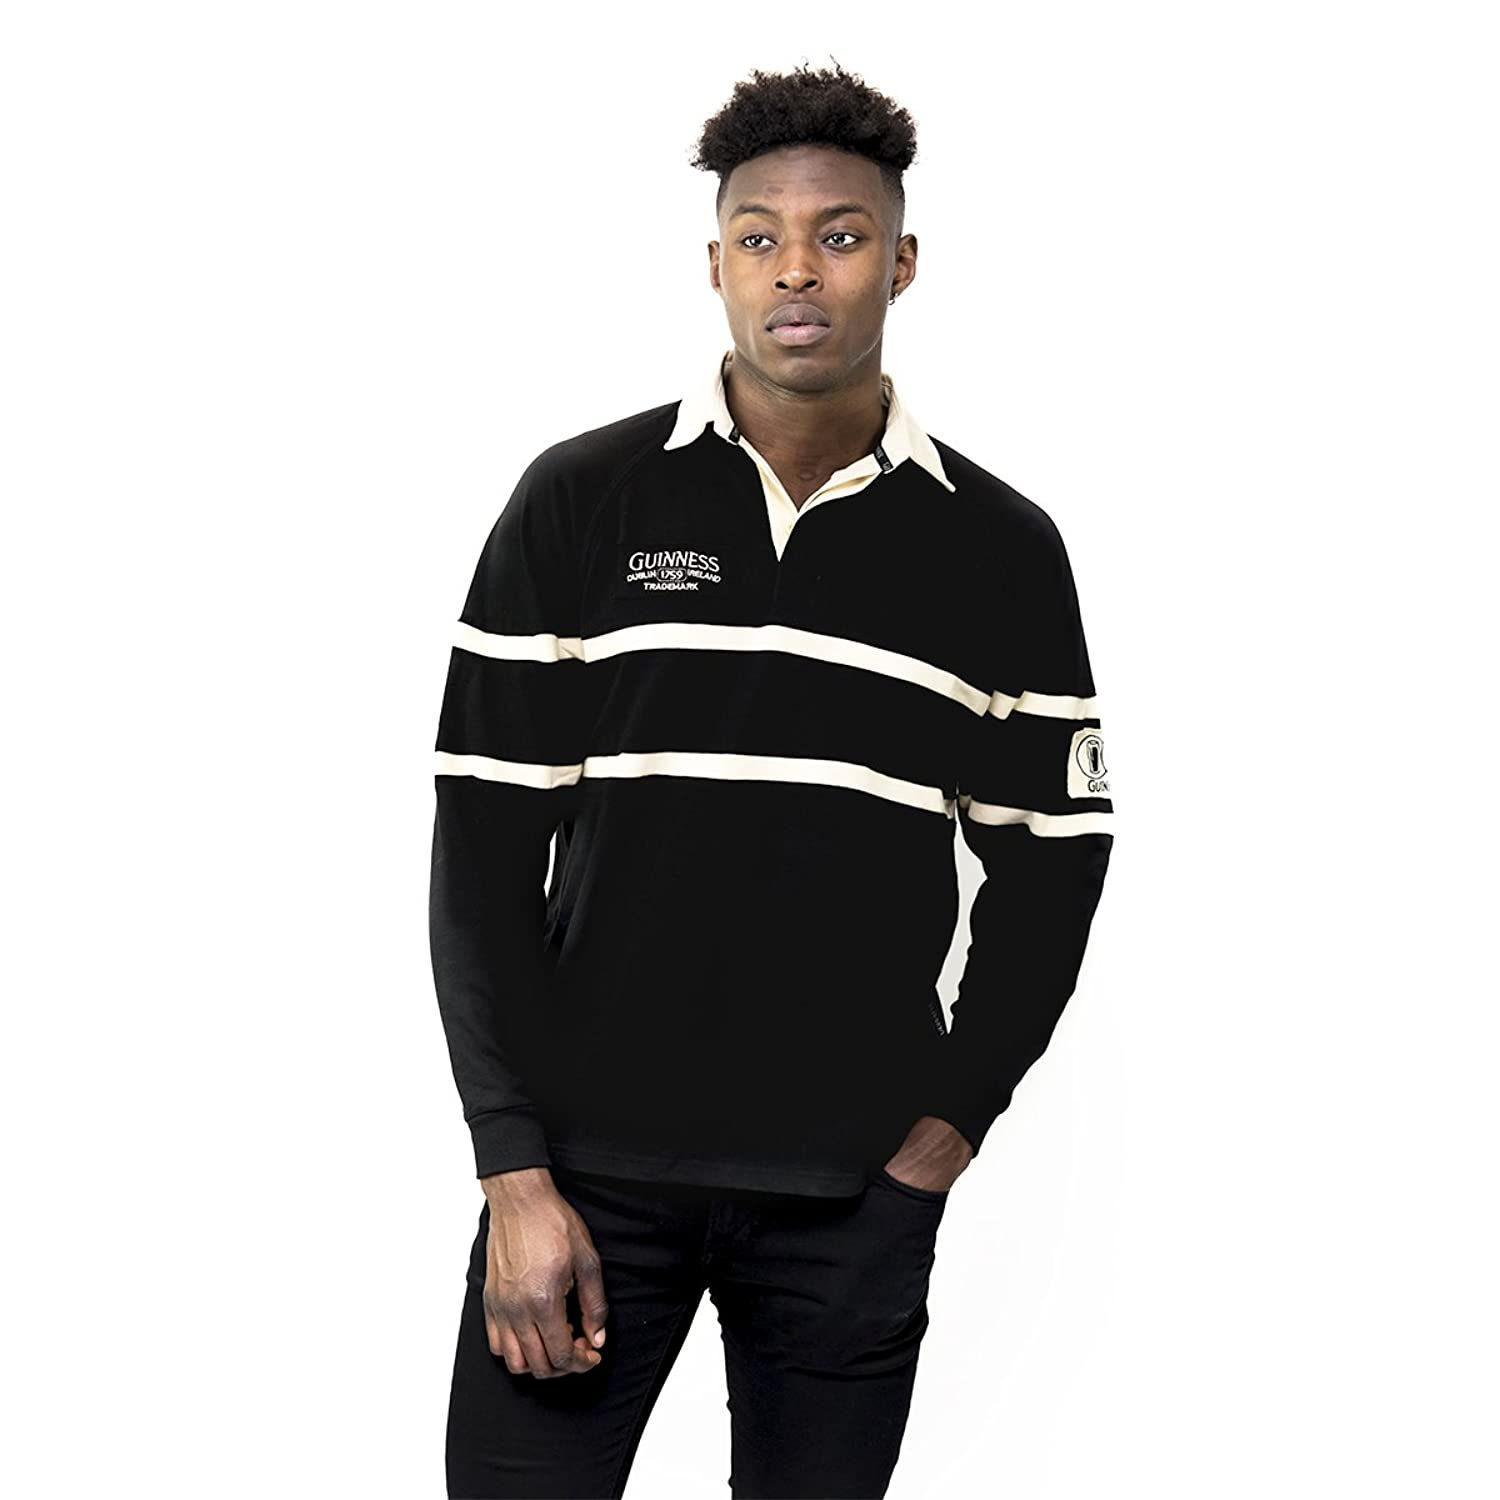 810b91487cf Guinness® Traditional Rugby Jersey Made from 100% Cotton, this jersey is  available in men\'s sizes Medium to 3X Large. This long sleeve rugby jersey  is a ...